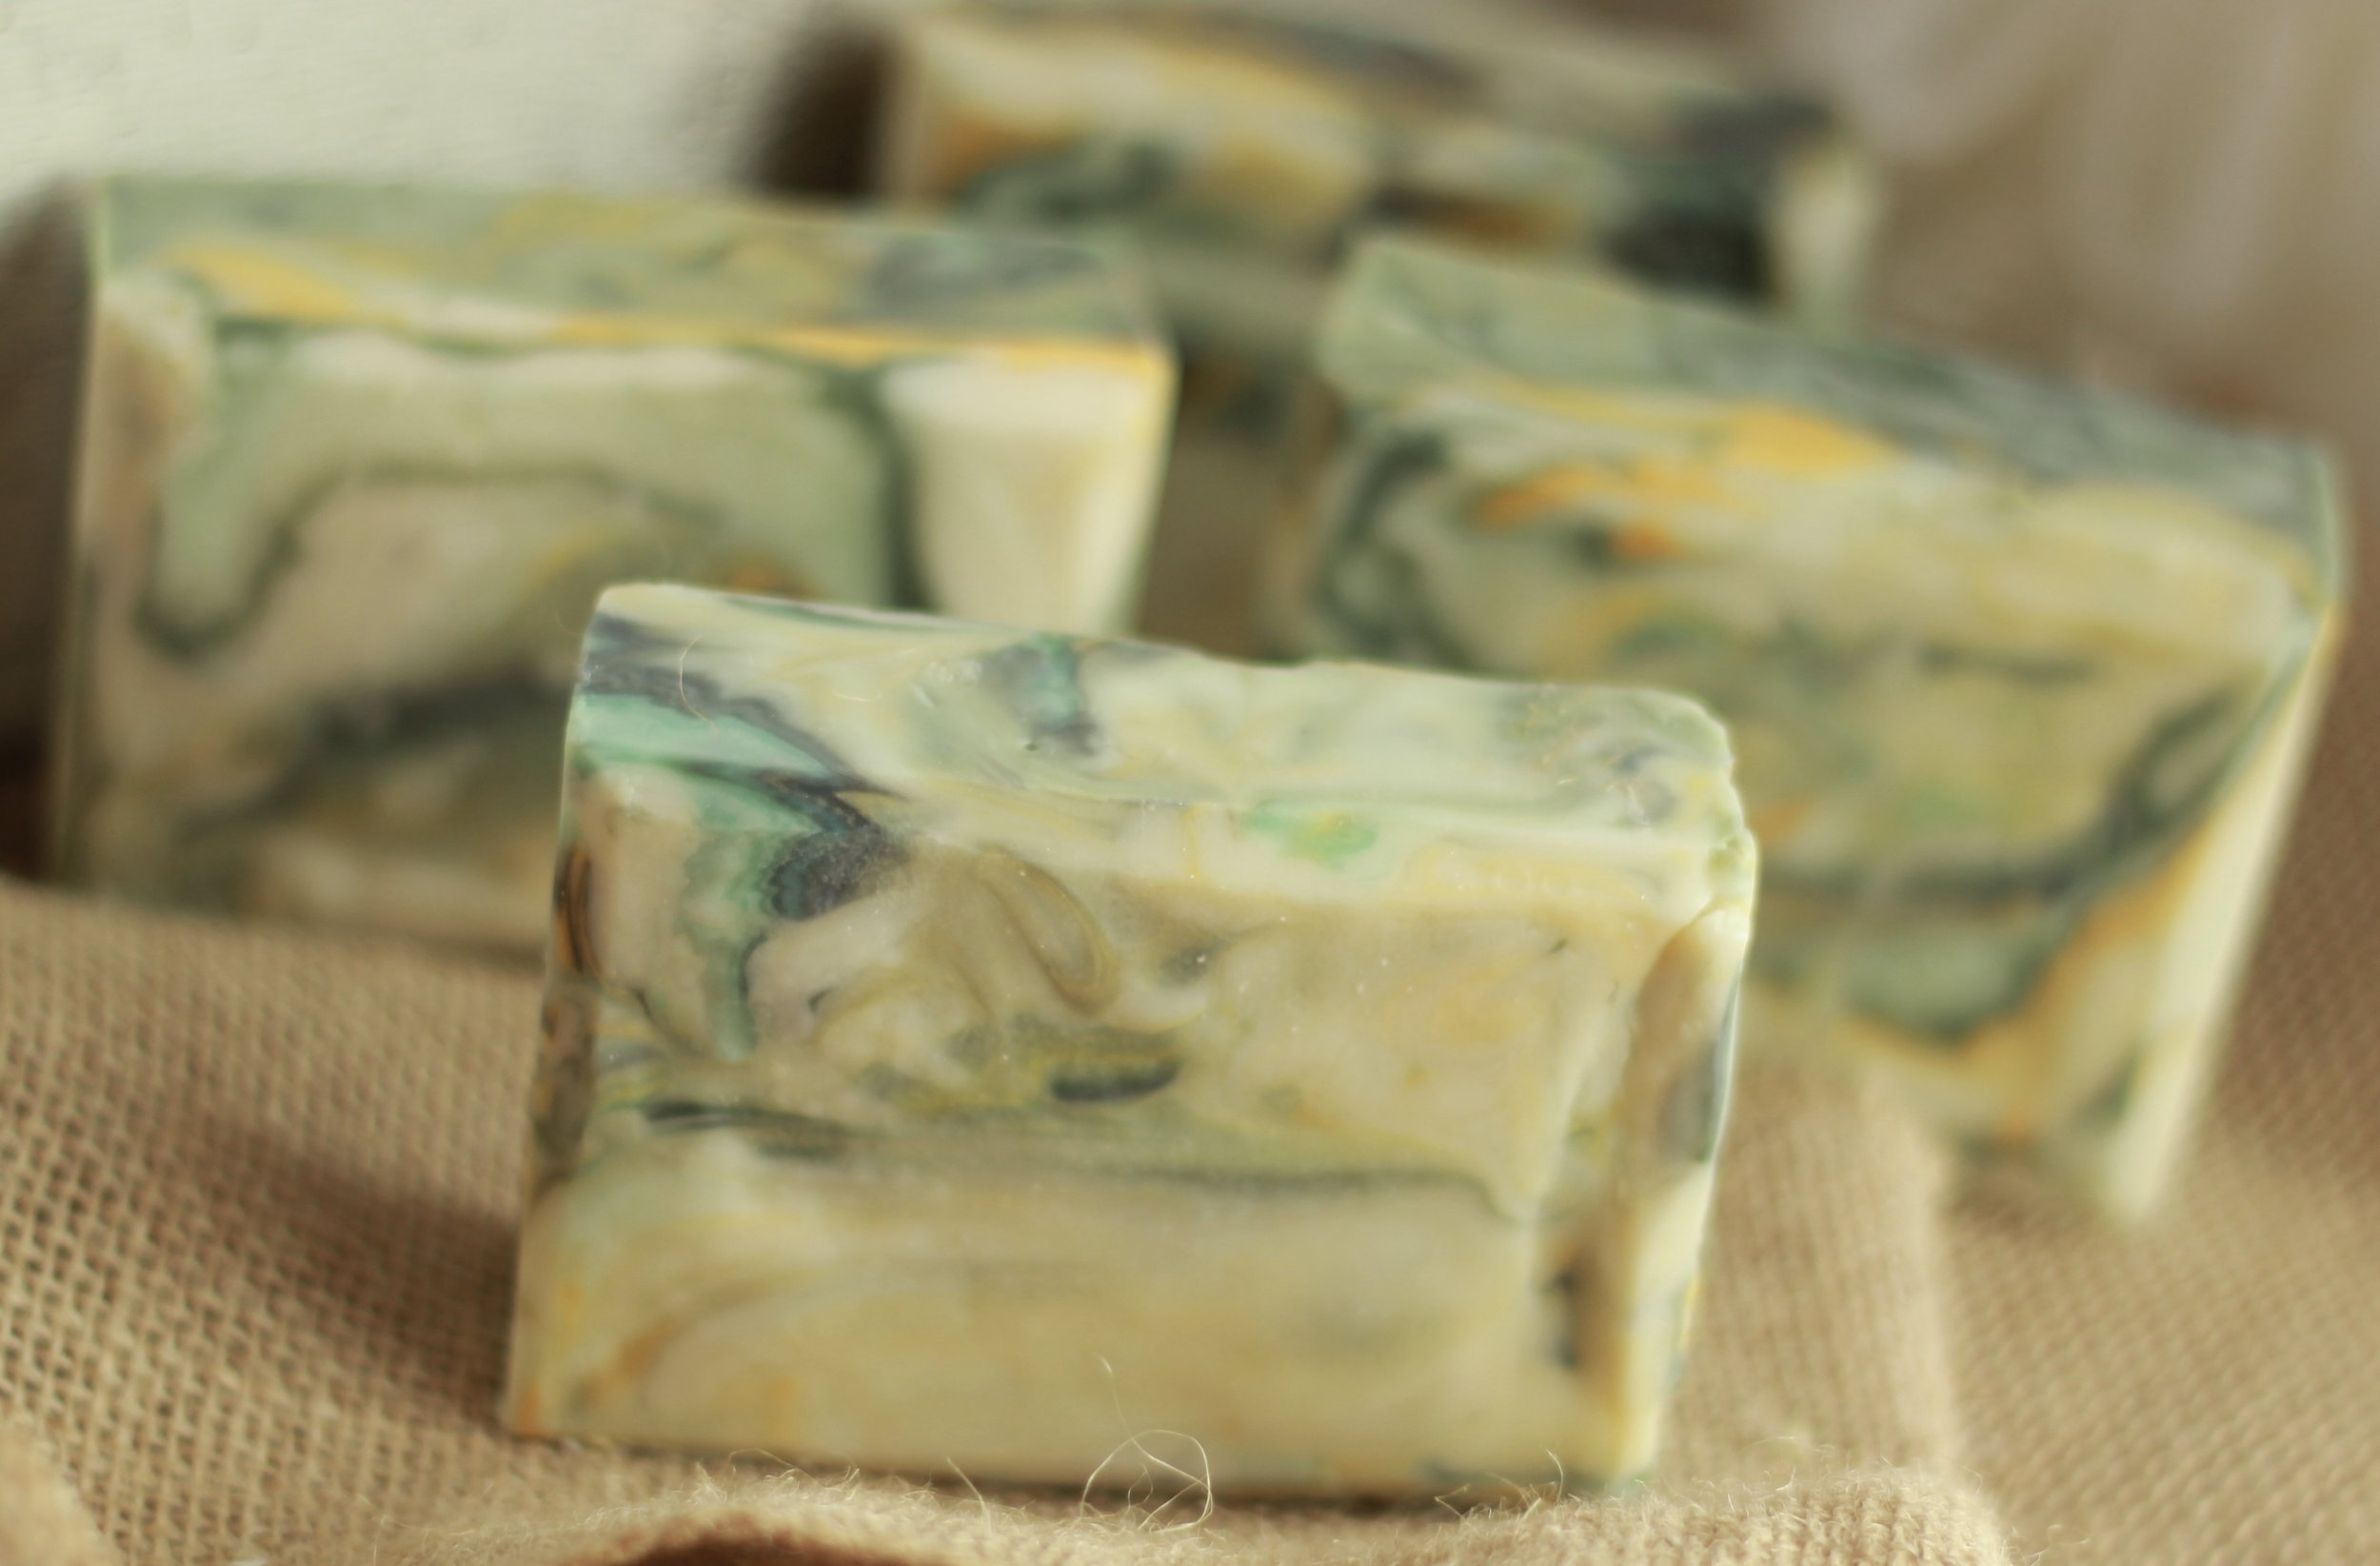 - Tea Tree Mint Loofah Soap. This soap is made with avocado, coconut, palm, and castor oils as well as green tea extract and essential oils.  Slices of a loofah sponge have been placed in the bottom half of each bar for exfoliation.